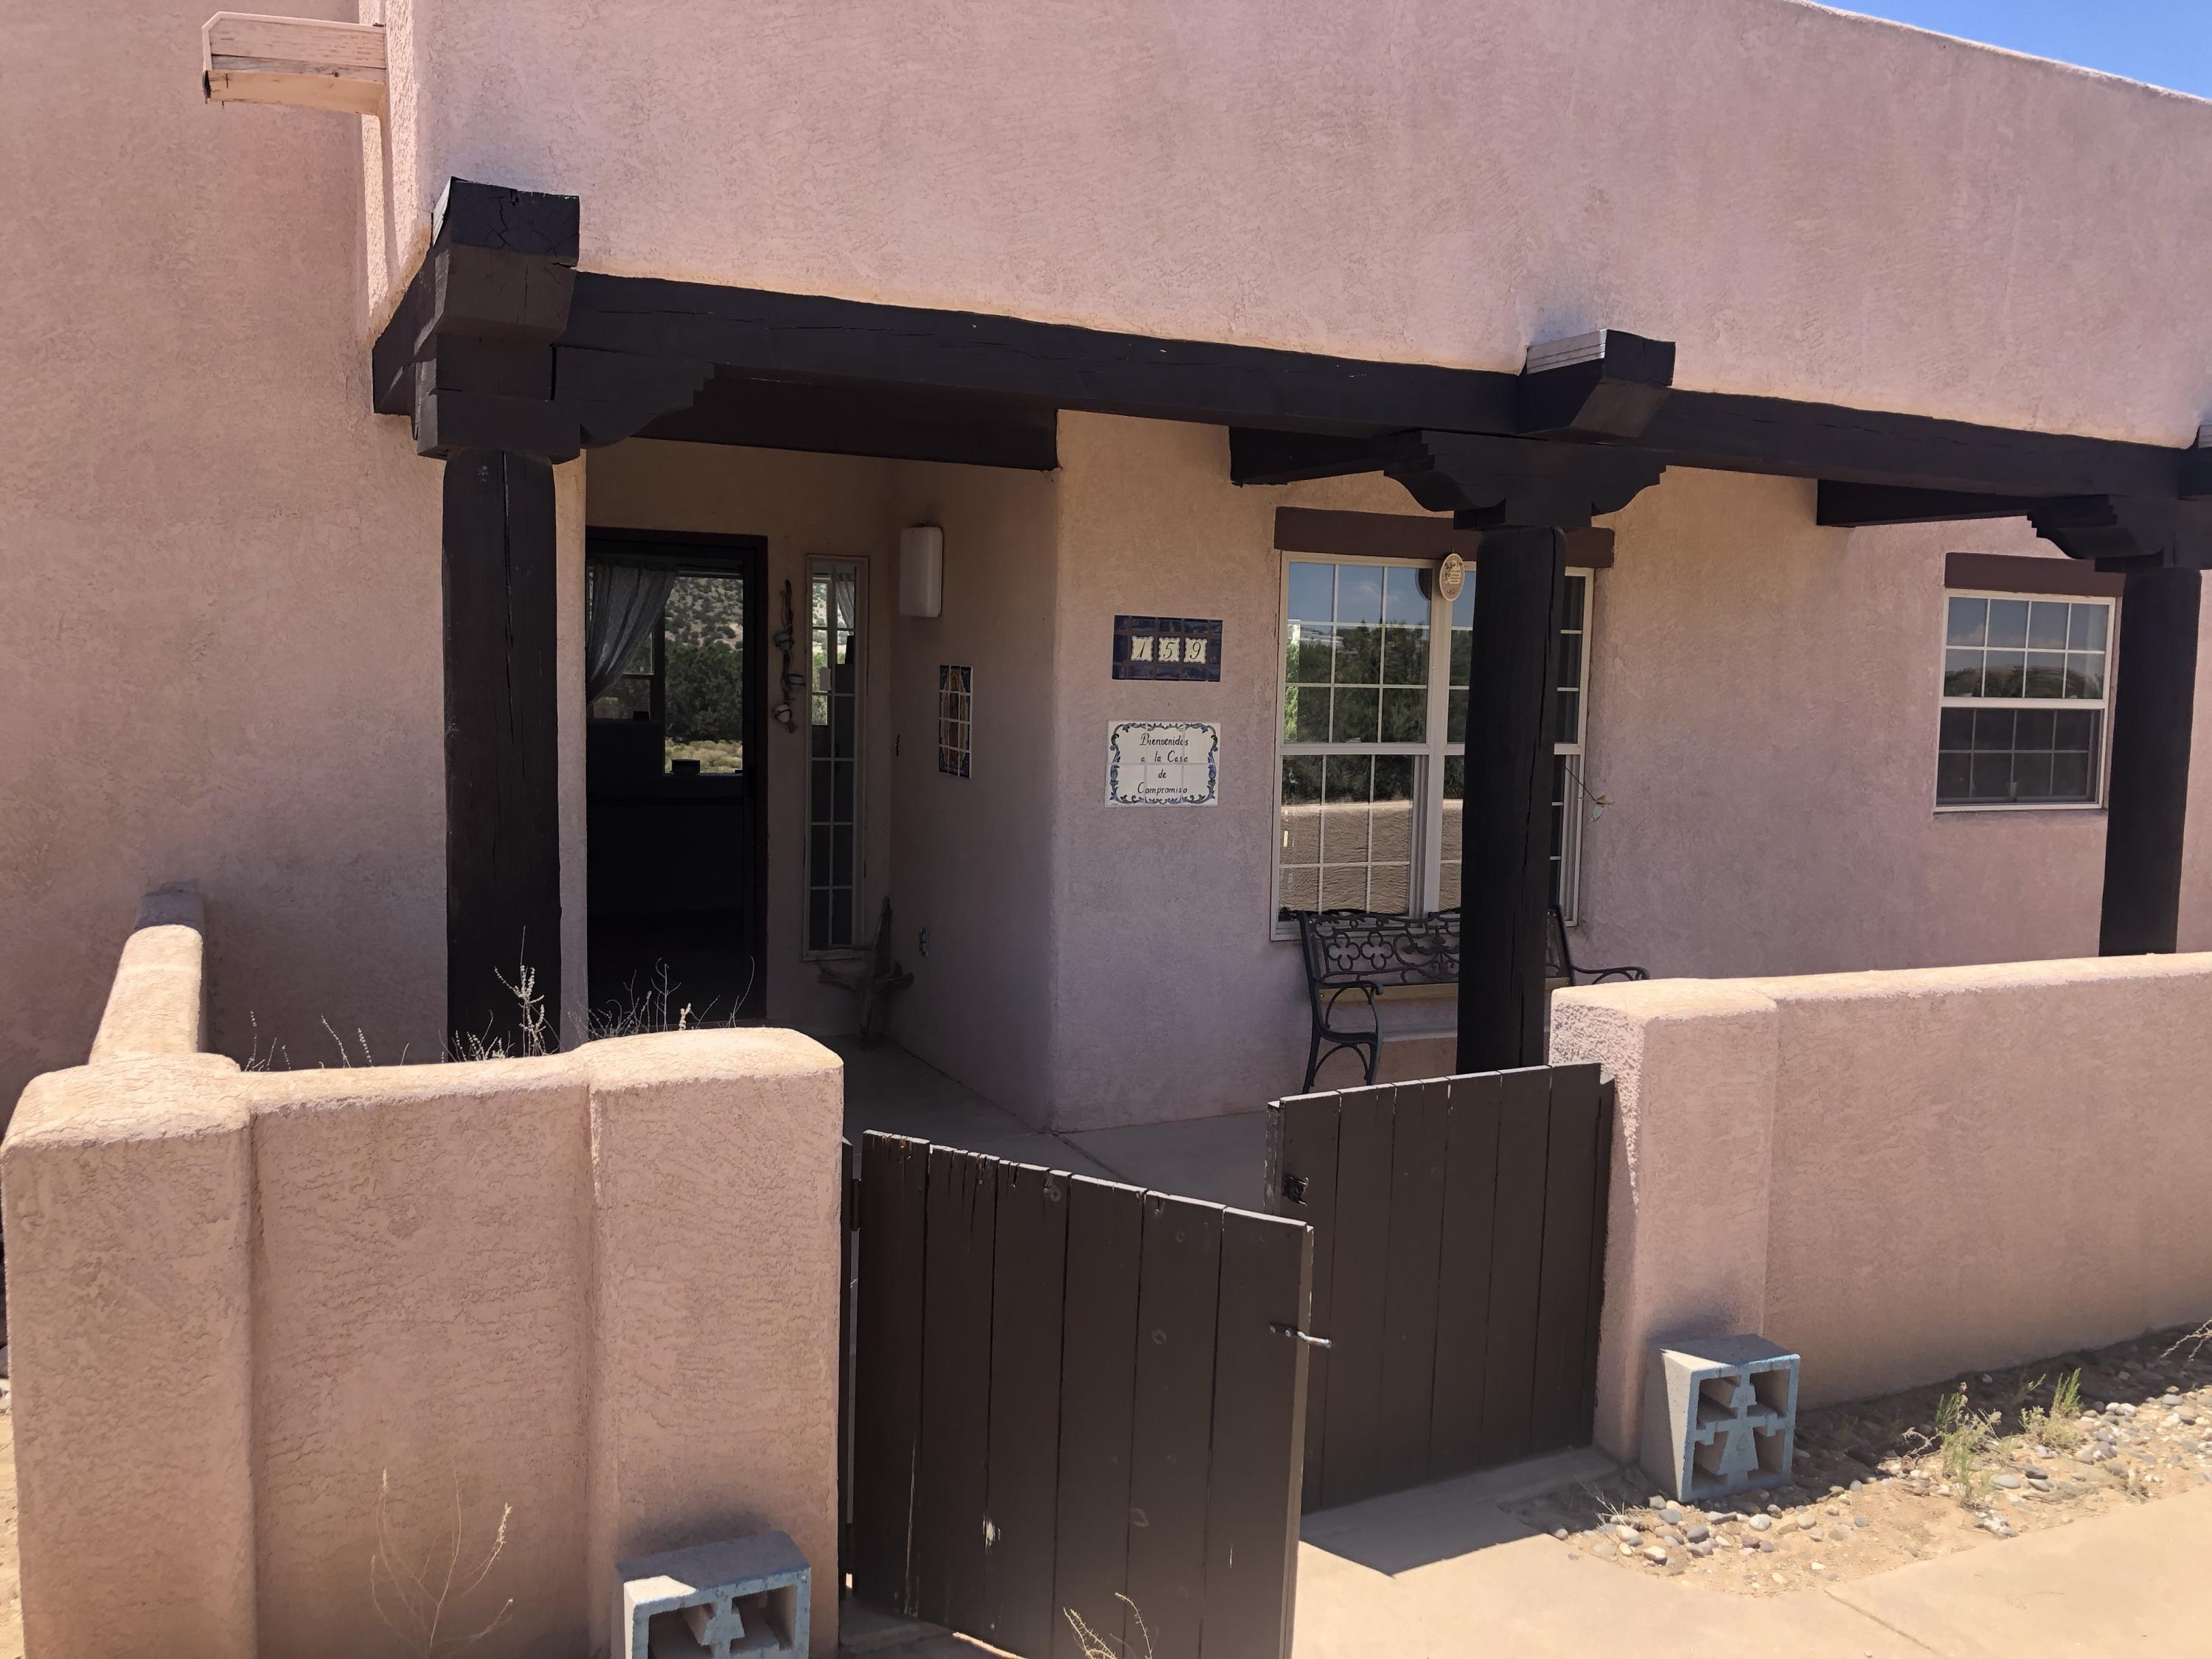 Great home amazing views with an open floor plan large windows helps to bring the amazing view indoors.  Southwestern details in this home are are right in line with the surroundings of the property.  Open floor plan, Saltio tile, wood beams in the ceiling, wood burning fireplace.  This home is move in ready come take a look today.